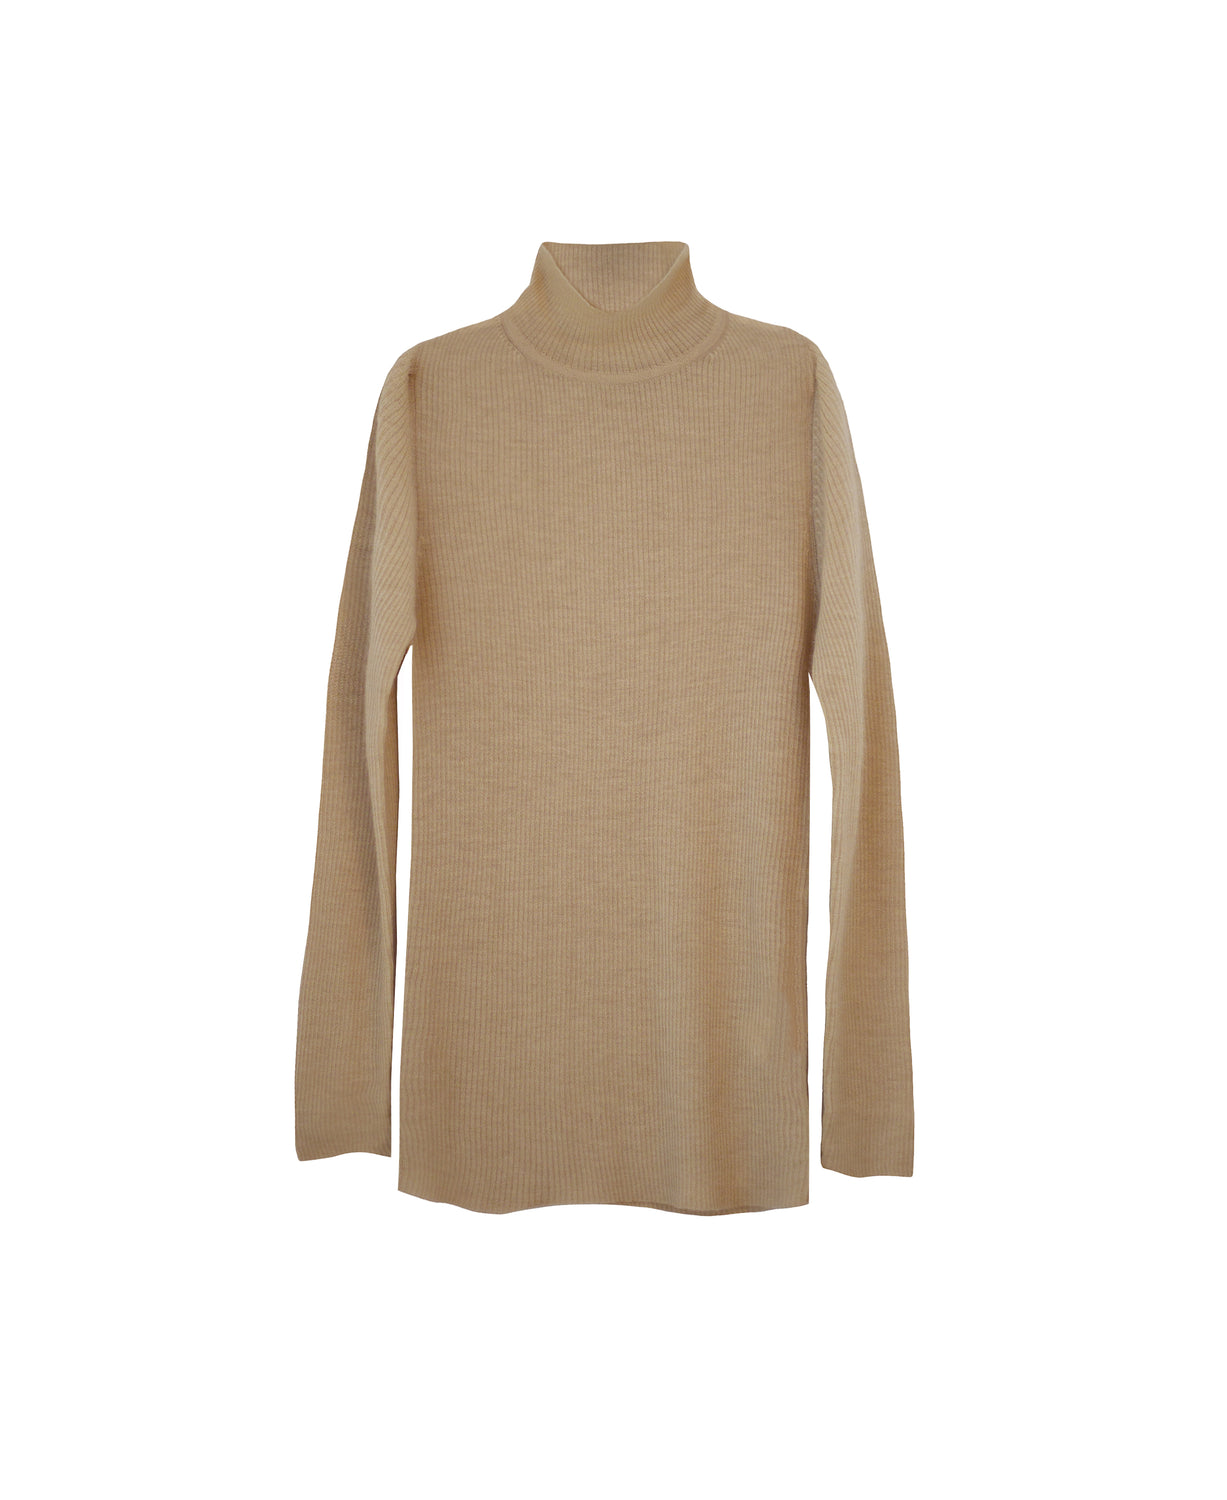 Absolute softest feather weight, fine rib cashmere turtleneck in latte